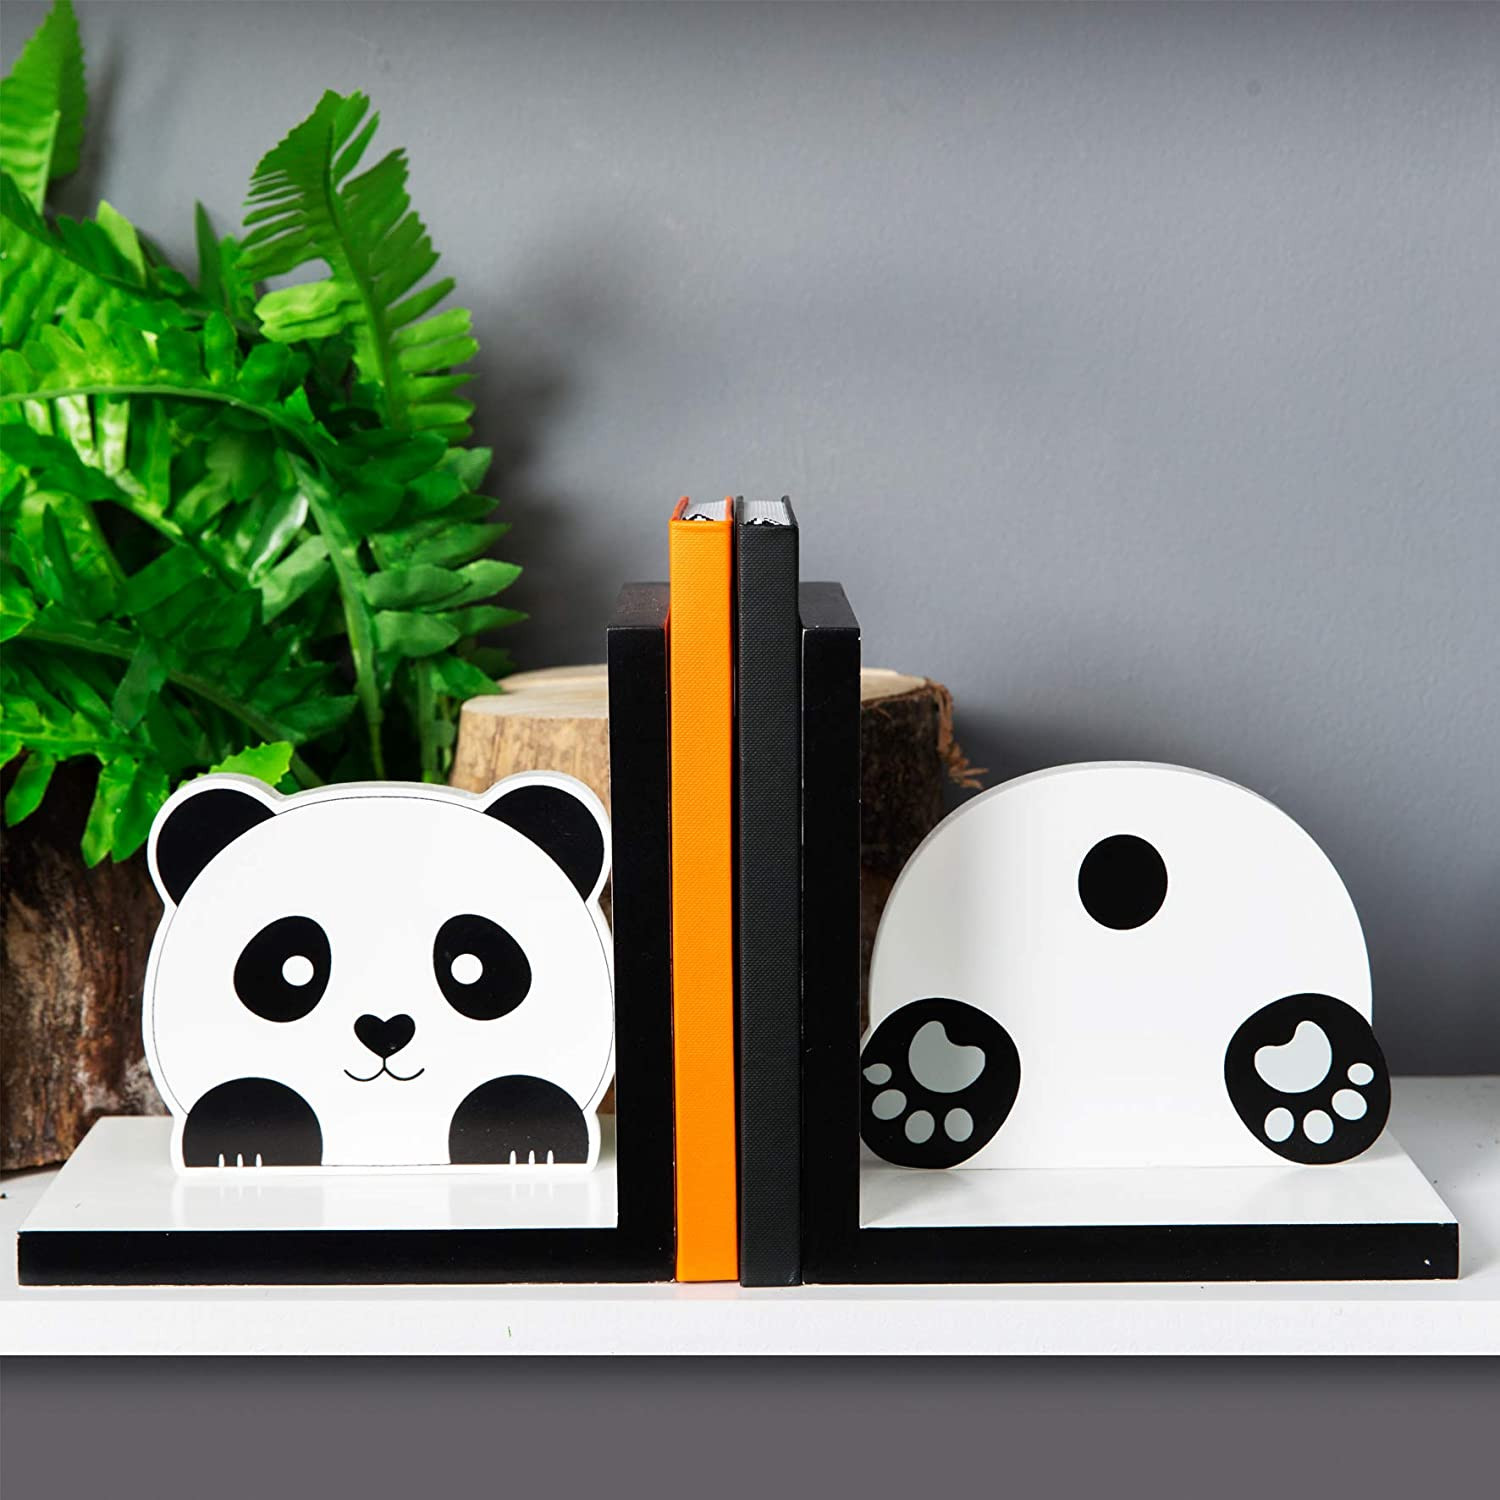 Widdop & Co Pair of Wooden Panda Bookends - Fun Cute Zoo Jungle Animals Support For Book